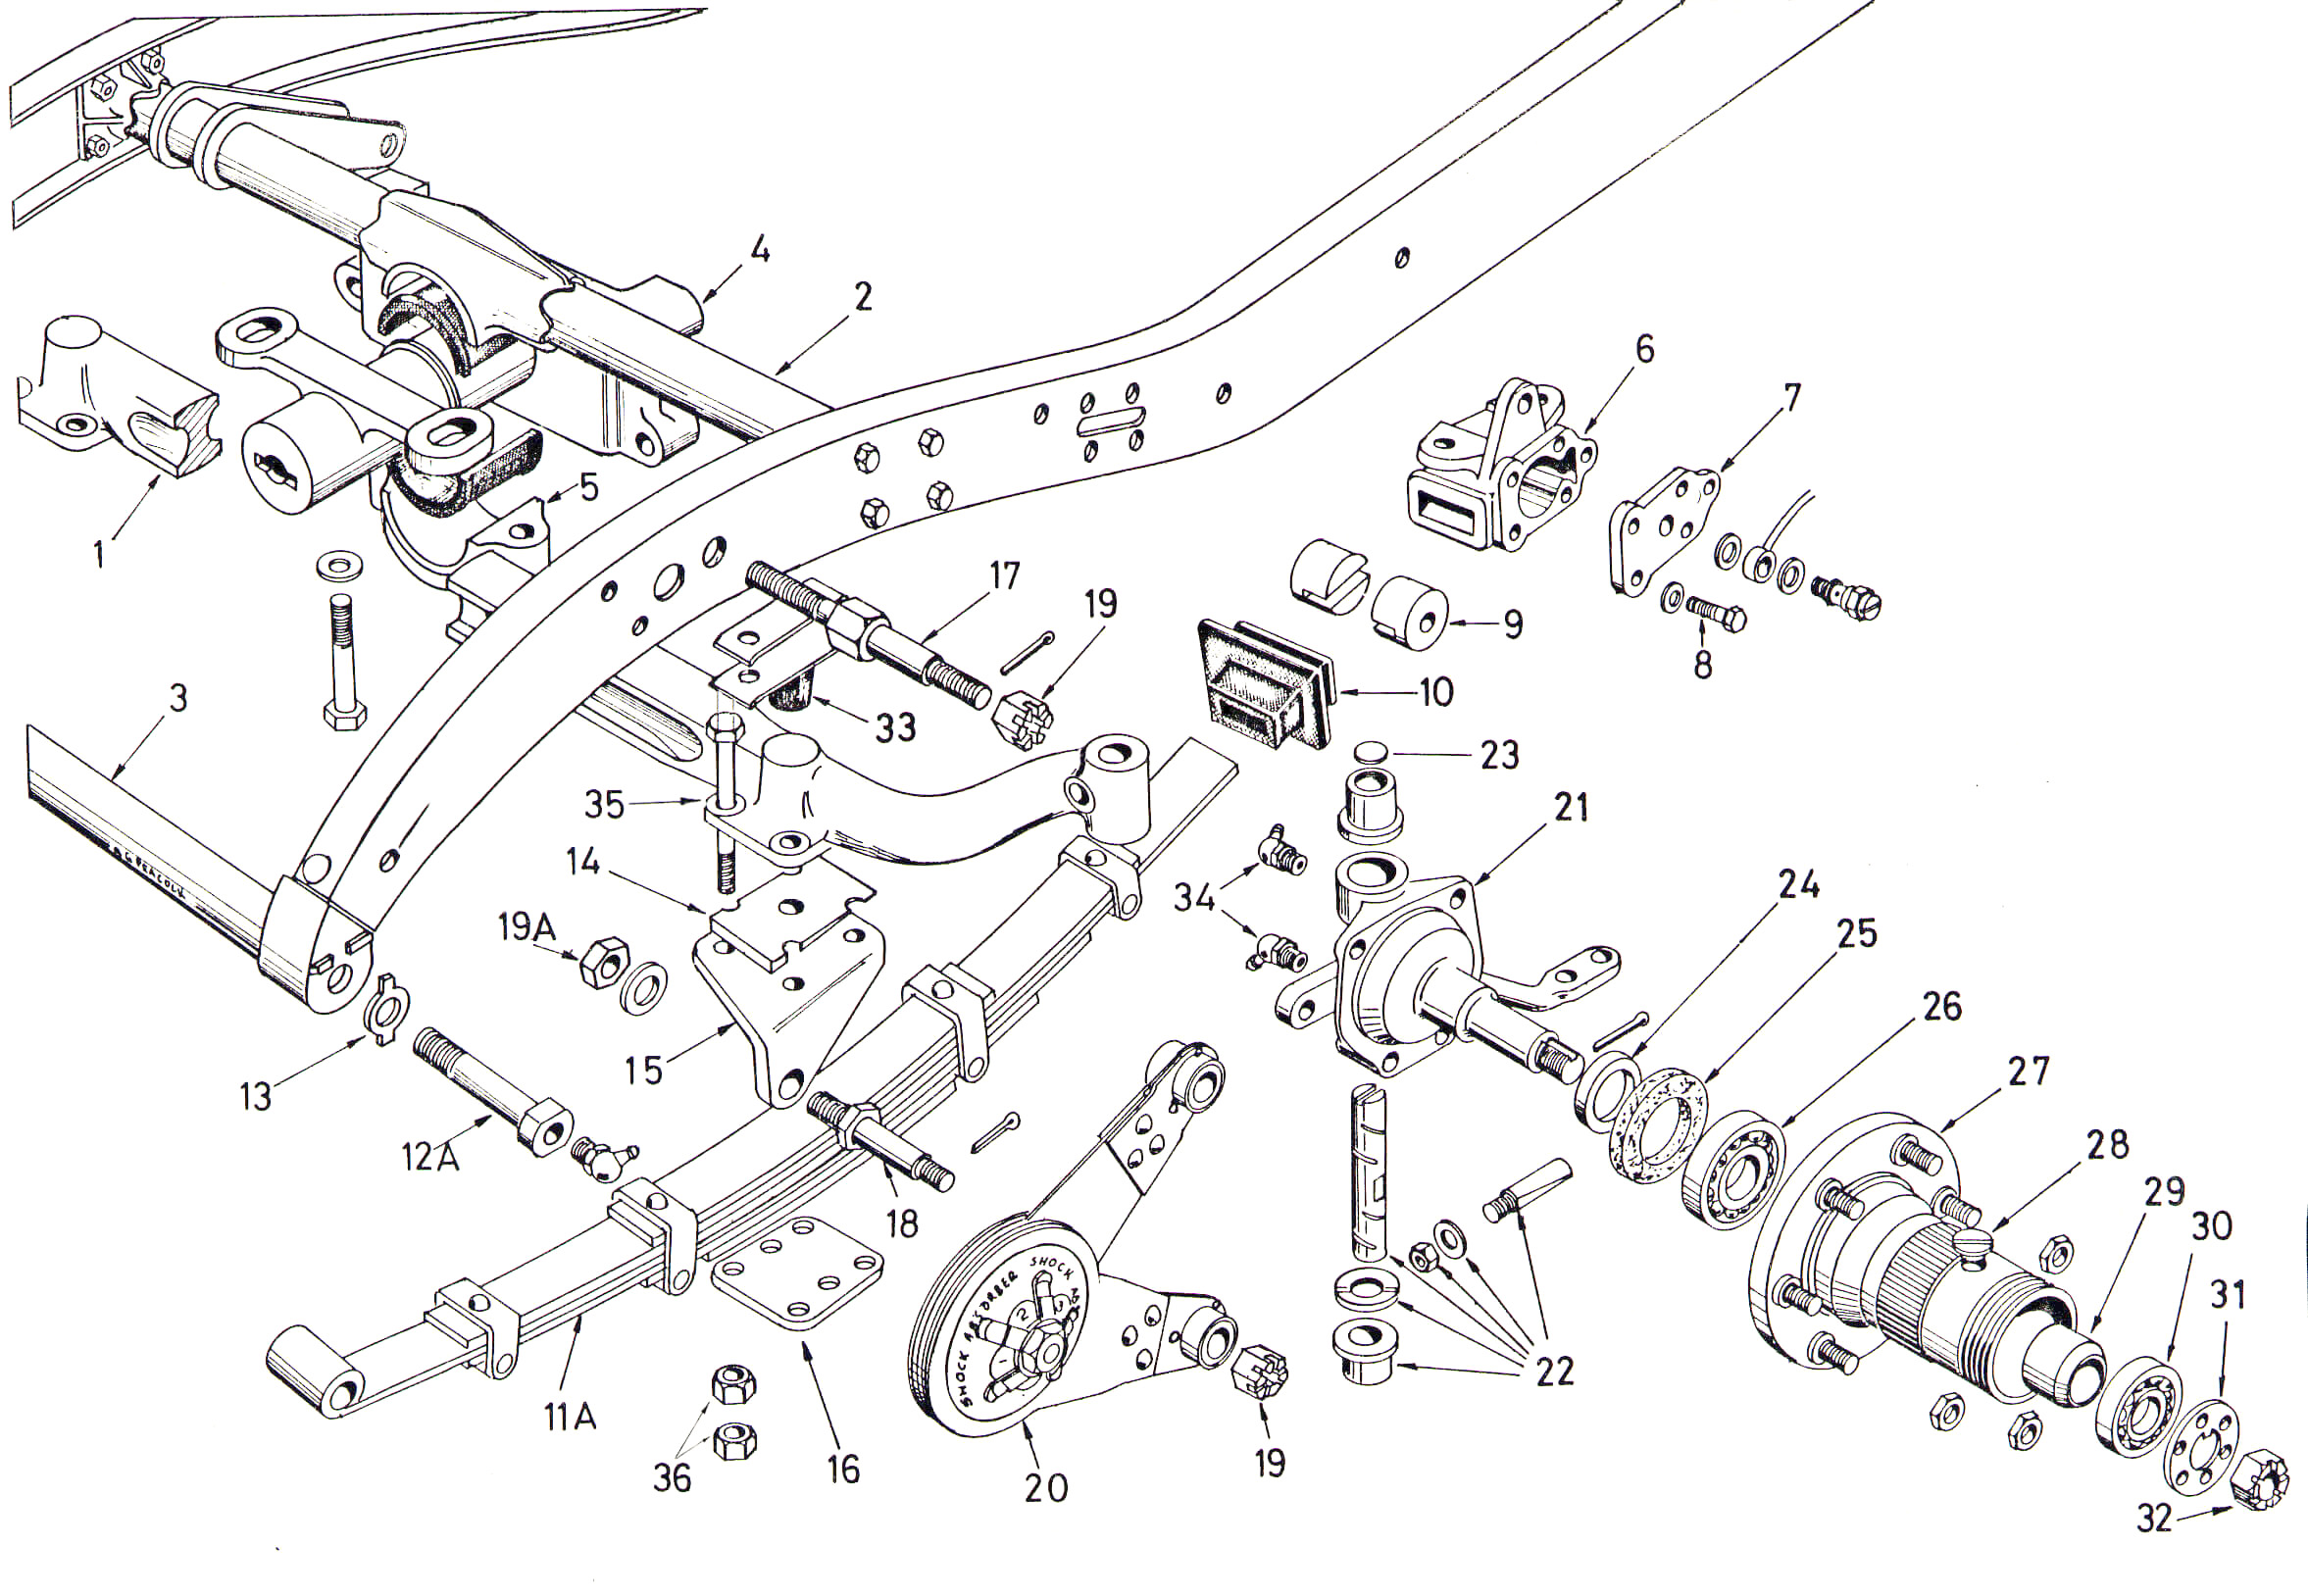 mmm front chassis  suspension  u0026 axle  p2